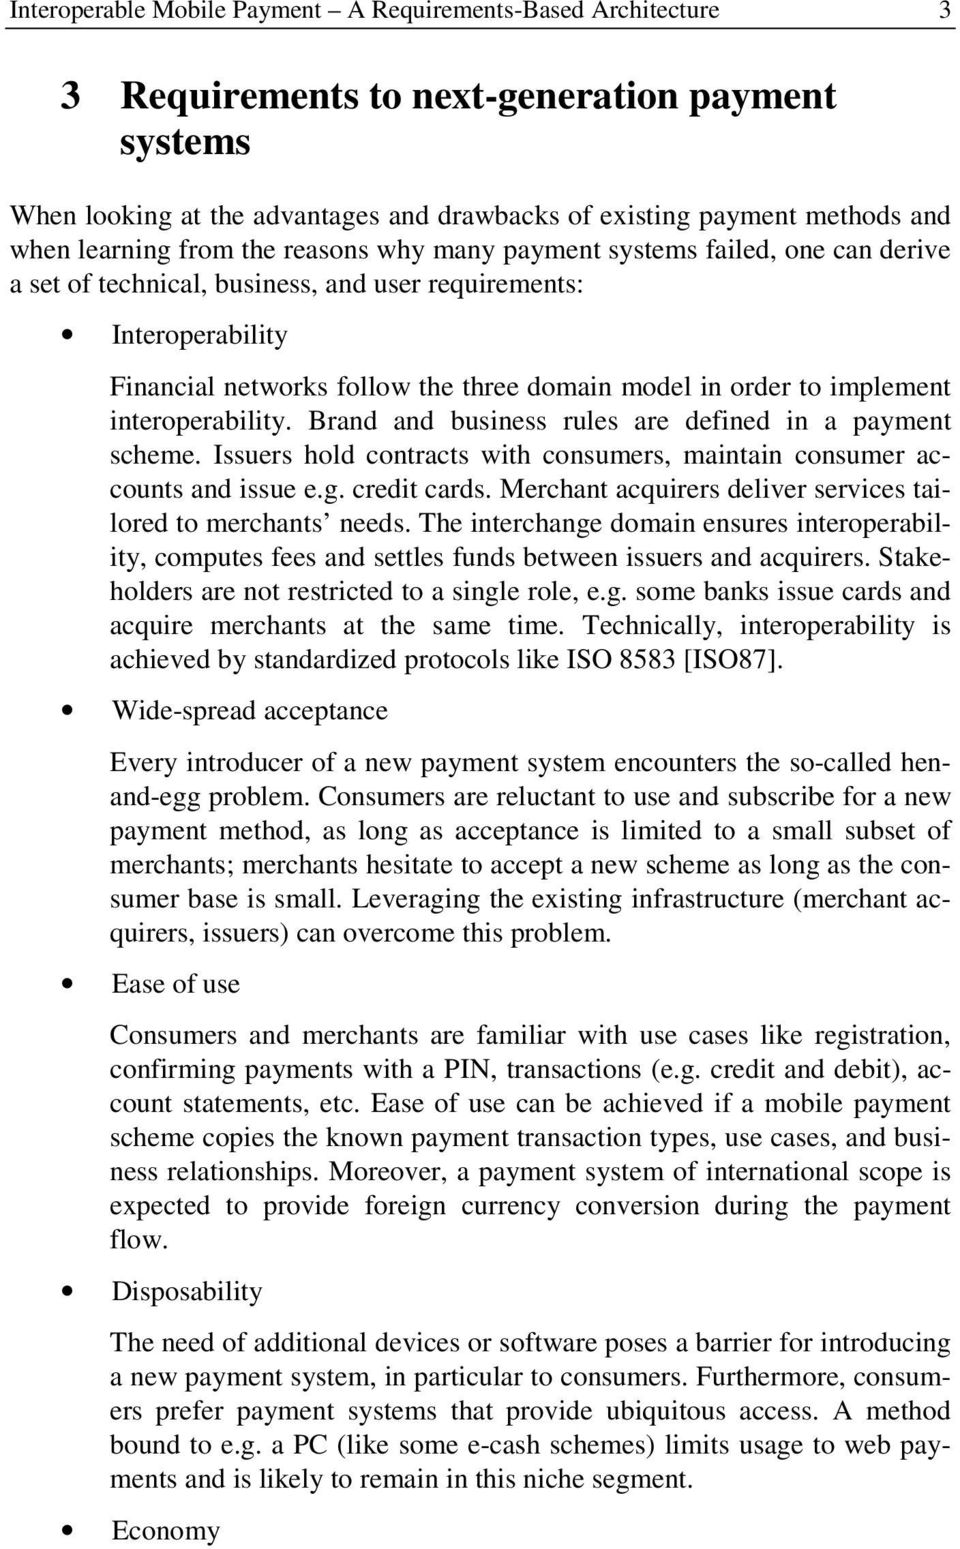 order to implement interoperability. Brand and business rules are defined in a payment scheme. Issuers hold contracts with consumers, maintain consumer accounts and issue e.g. credit cards.